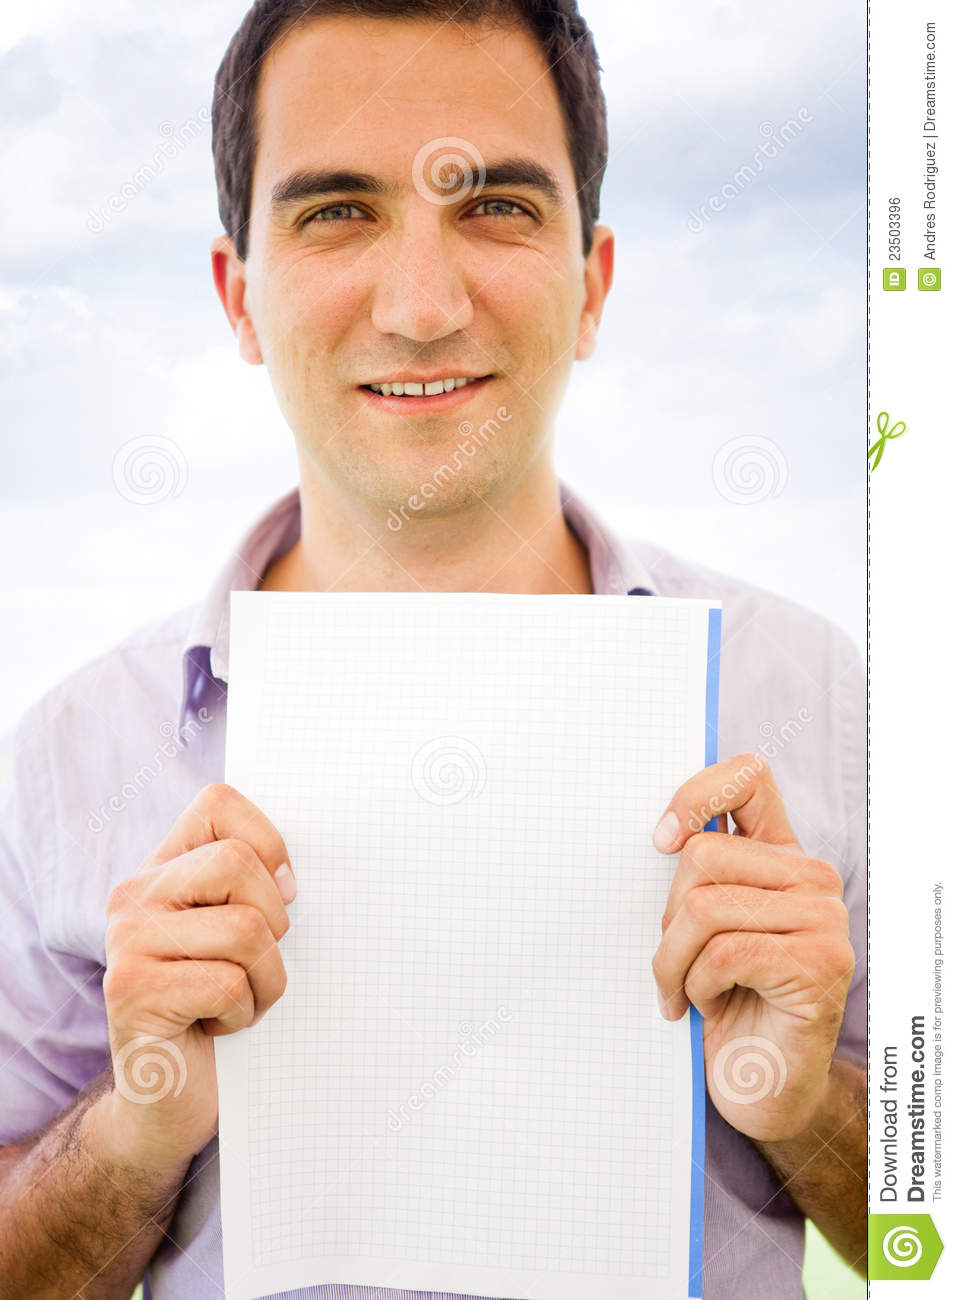 Man holding a paper stock photo. Image of cheerful ...